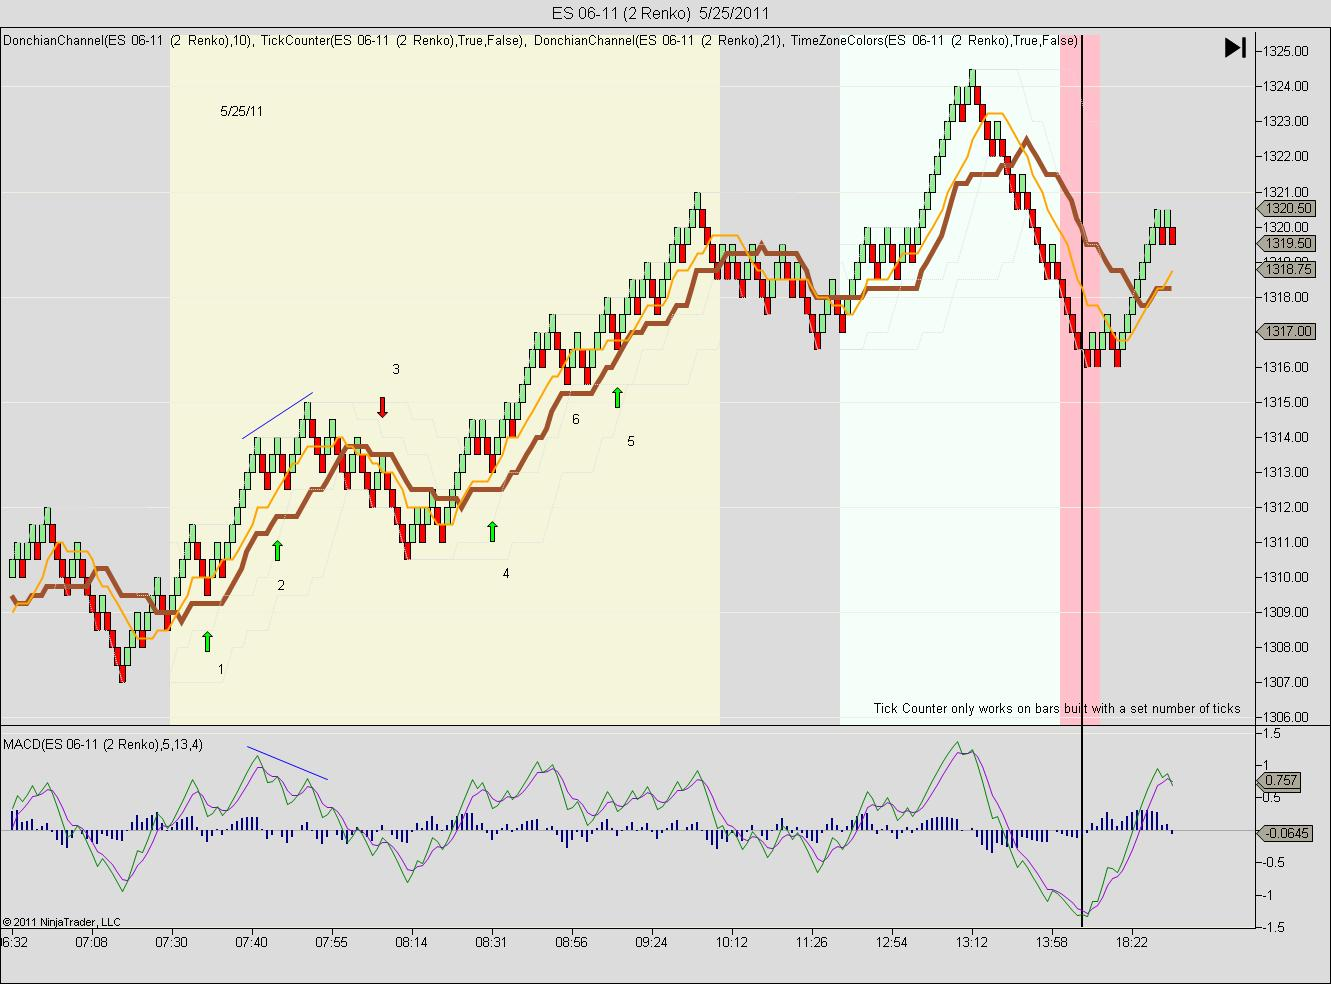 My ES Scalping Strategy, 2+ pts/day - Emini and Emicro Index Futures